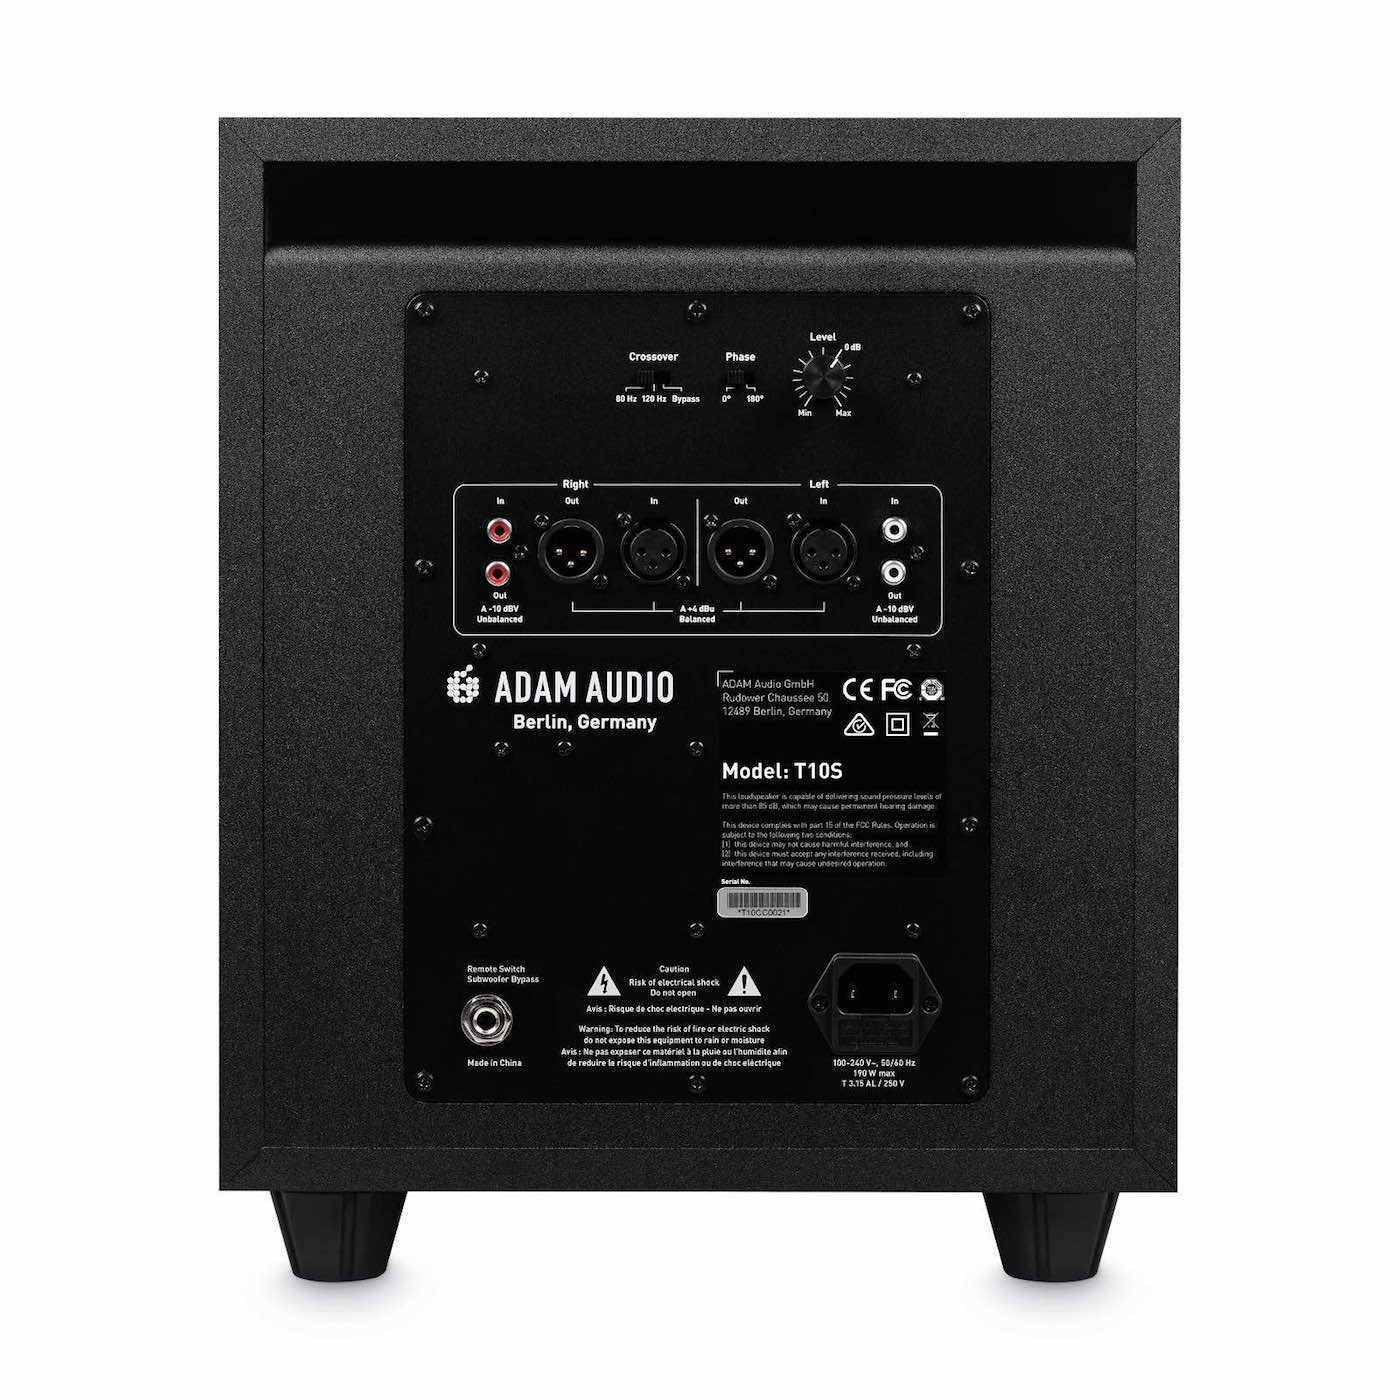 Adam Audio T10S sub mix monitor pro studio midi music audiofader